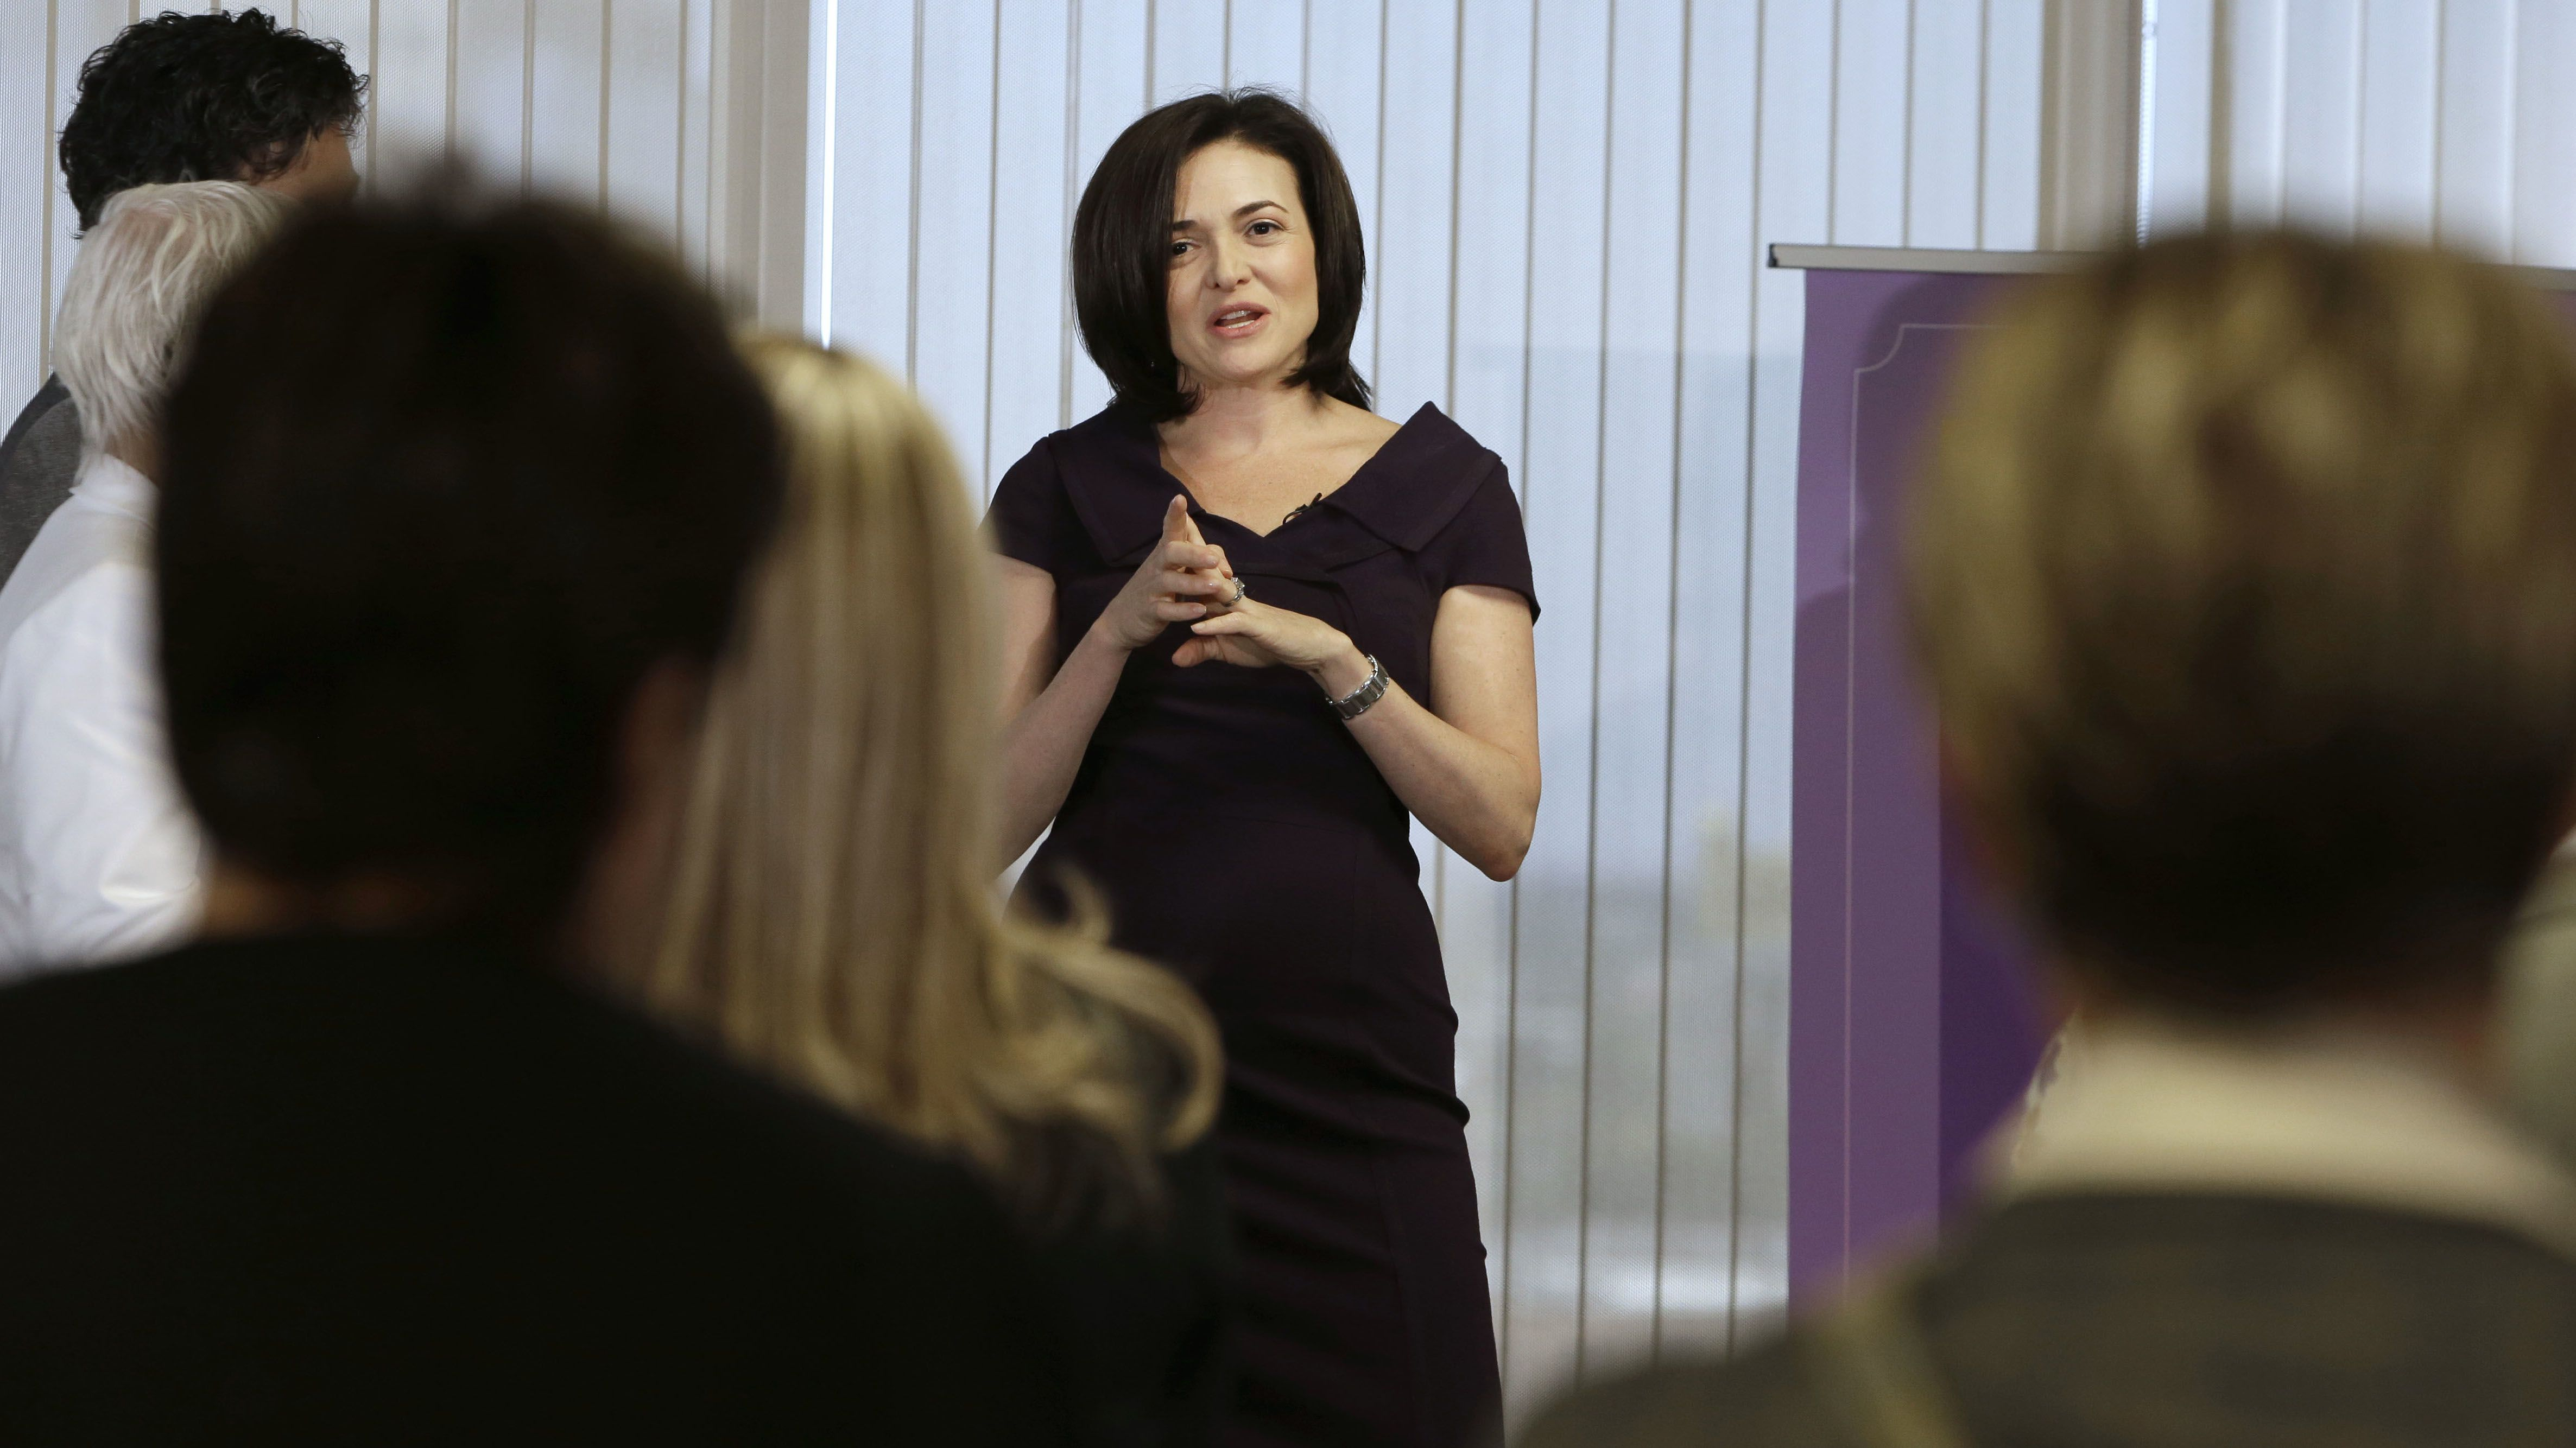 Sheryl Sandberg, chief operating officer of Facebook, discusses the challenges facing women in the workplace at a luncheon appearance before the California Women's Legislative Caucus in Sacramento, Calif., Wednesday, Aug. 21, 2013.  Sandberg said after years in corporate America, she wanted to launch a conversation about women's inequality.(AP Photo/Rich Pedroncelli)